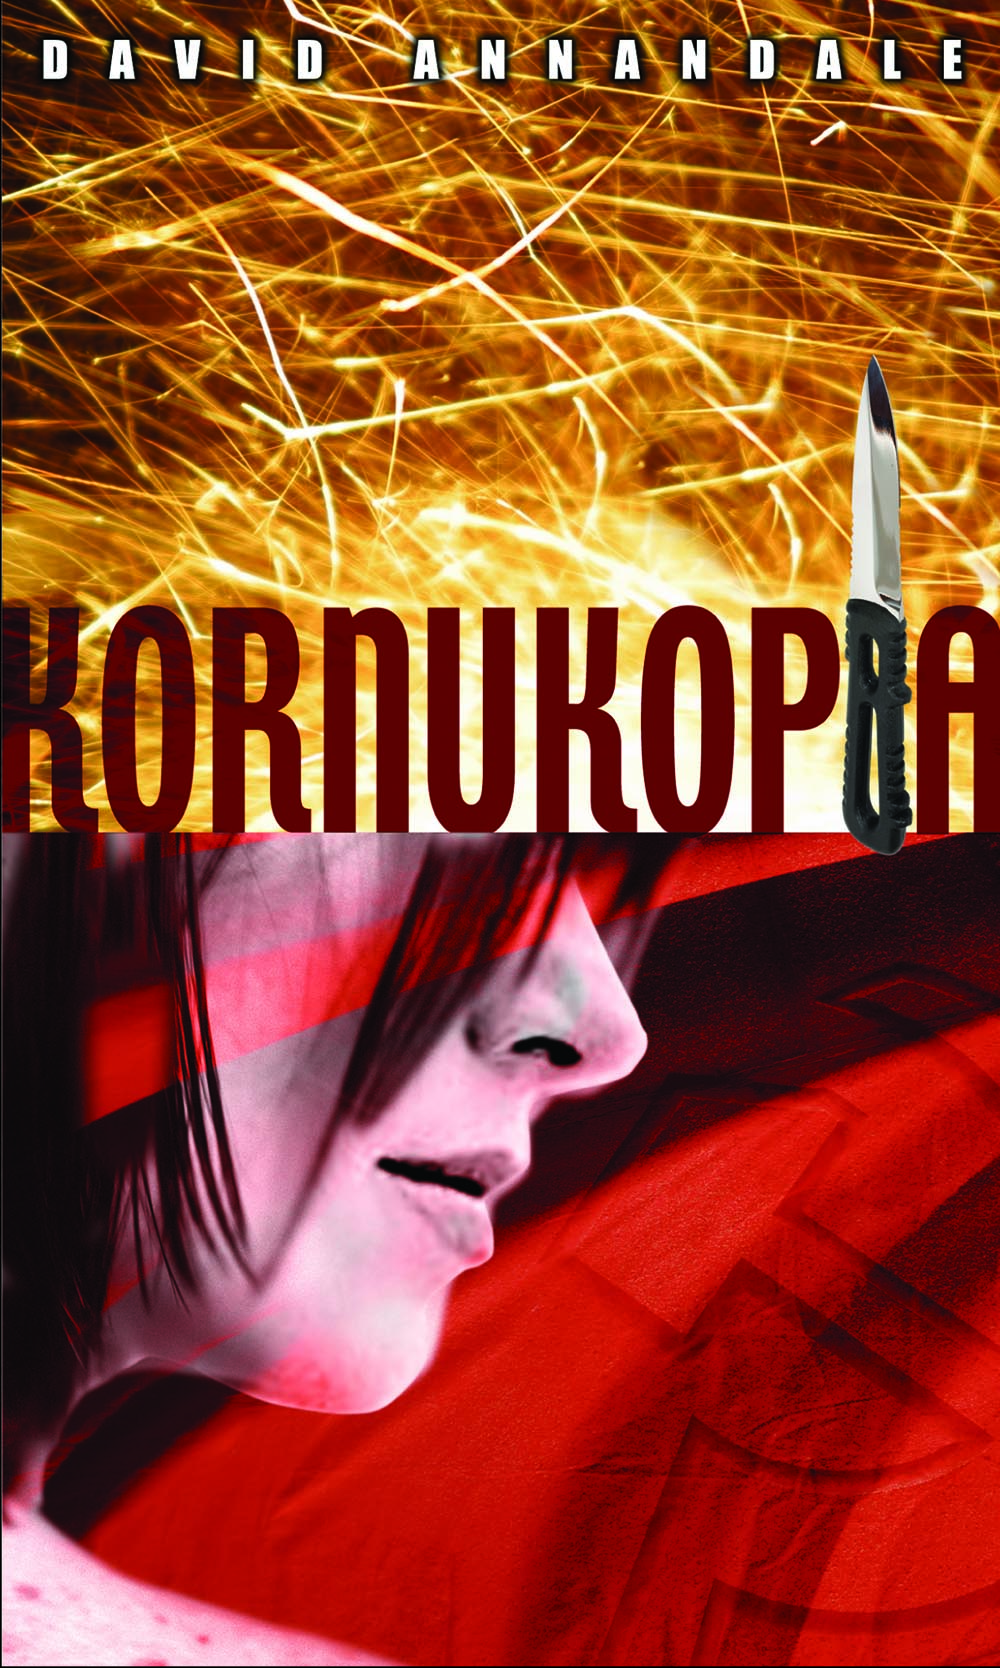 Kornukopia by David Annandale